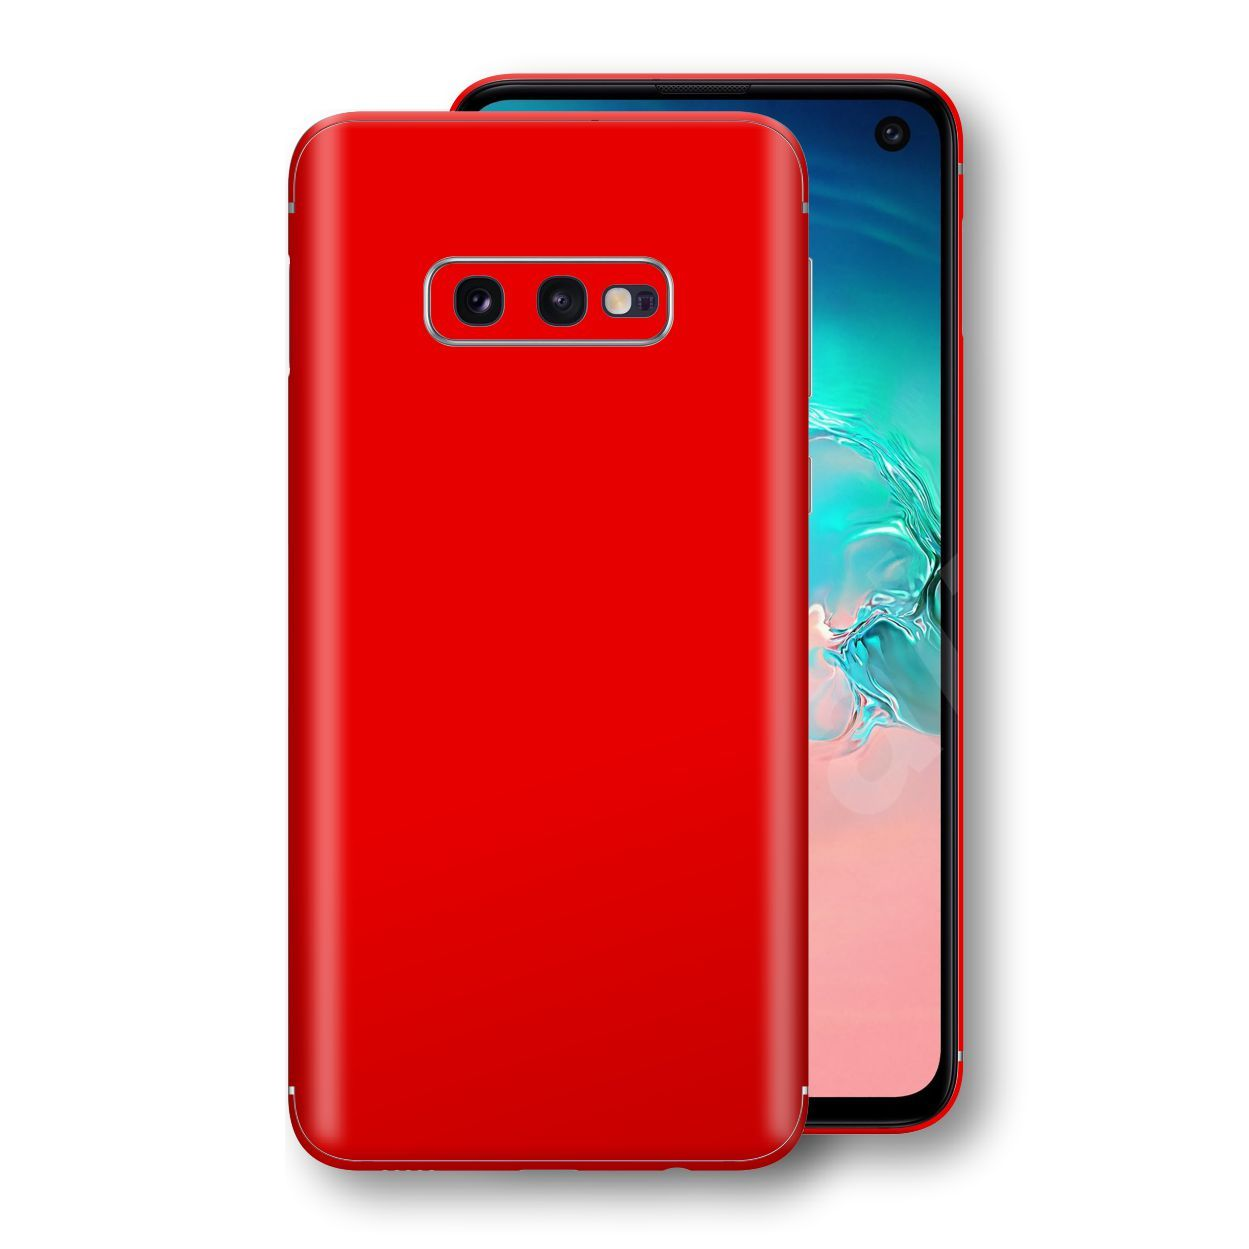 Samsung Galaxy S10e Bright Red Glossy Gloss Finish Skin, Decal, Wrap, Protector, Cover by EasySkinz | EasySkinz.com